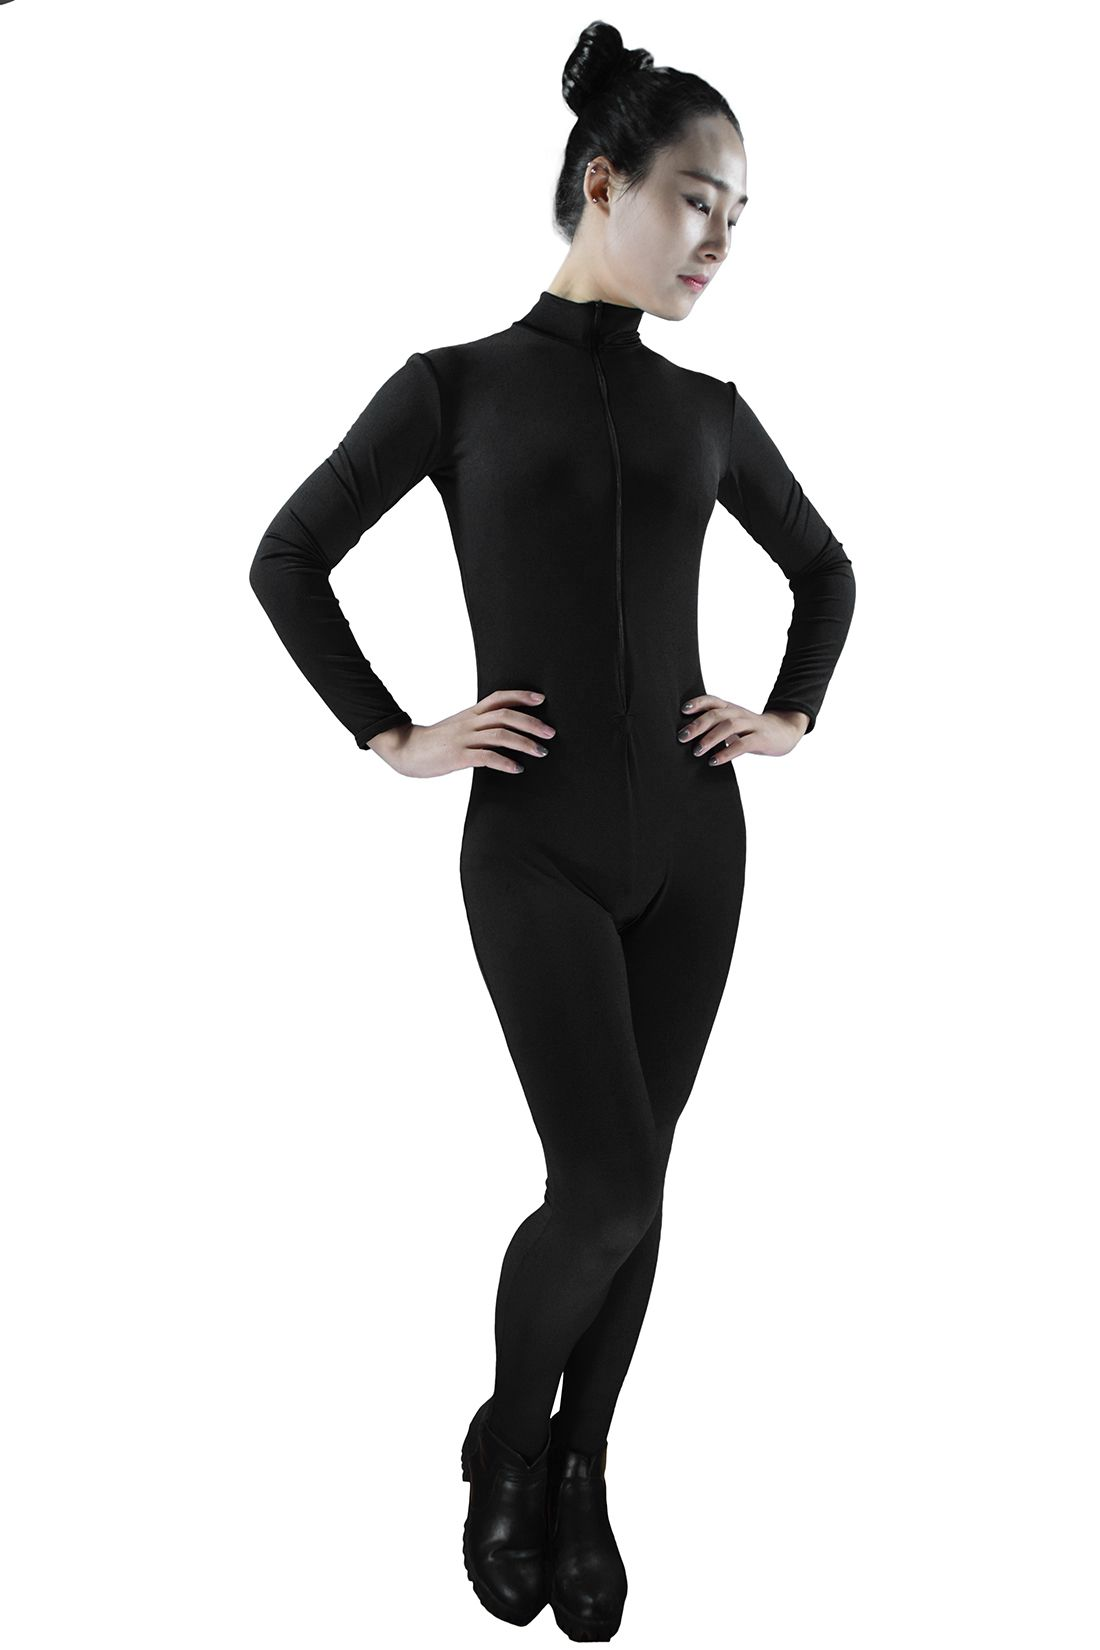 4792fa689 Turtleneck Spandex Dancewear Mock High Neck Nylon Long Sleeve Front ...